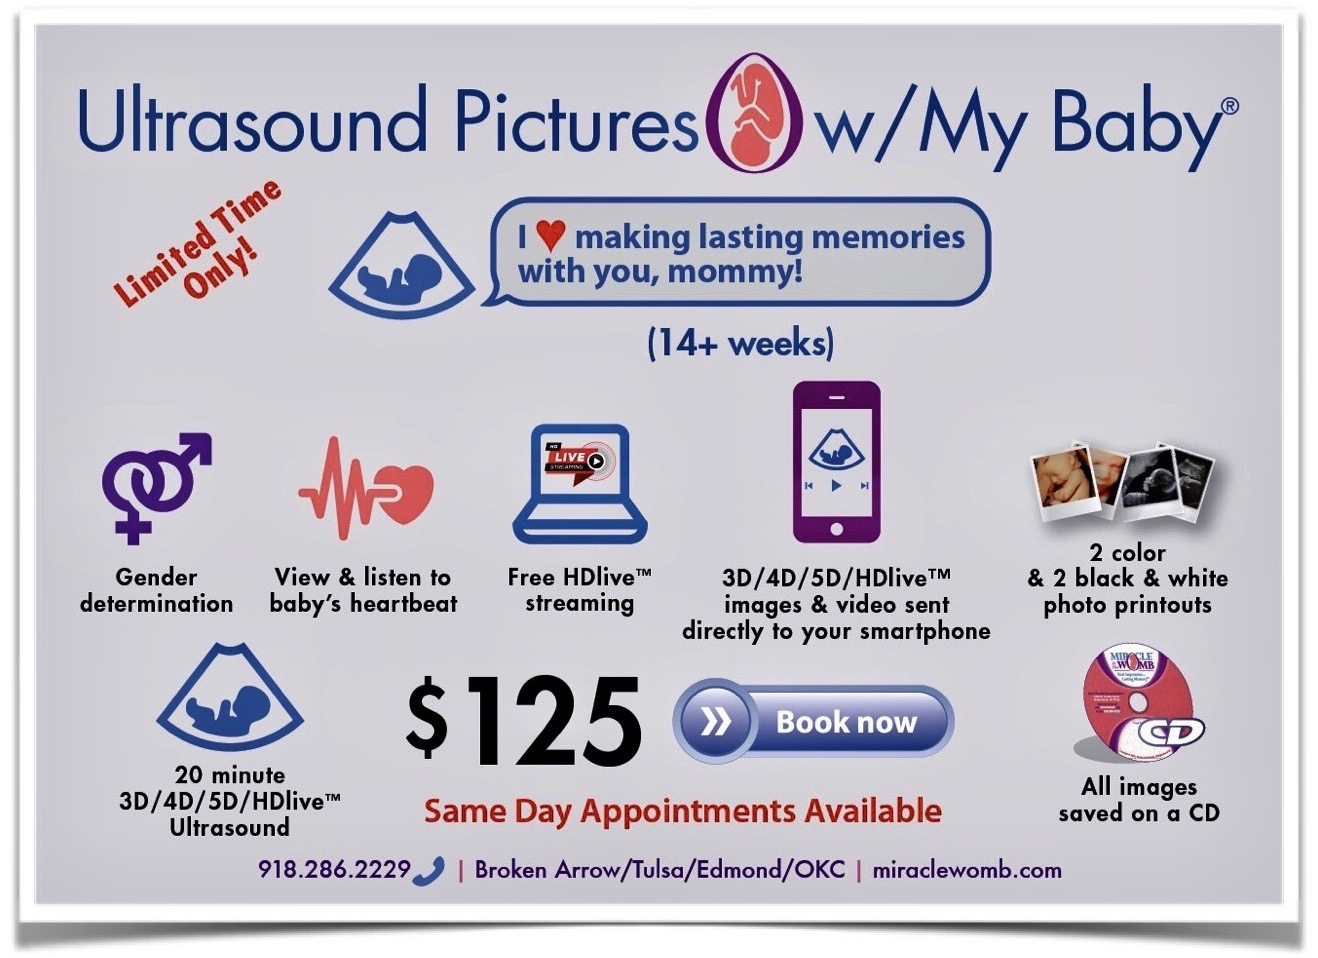 $125 3d 4d 5d HDlive pregnancy ultrasound pictures with my baby